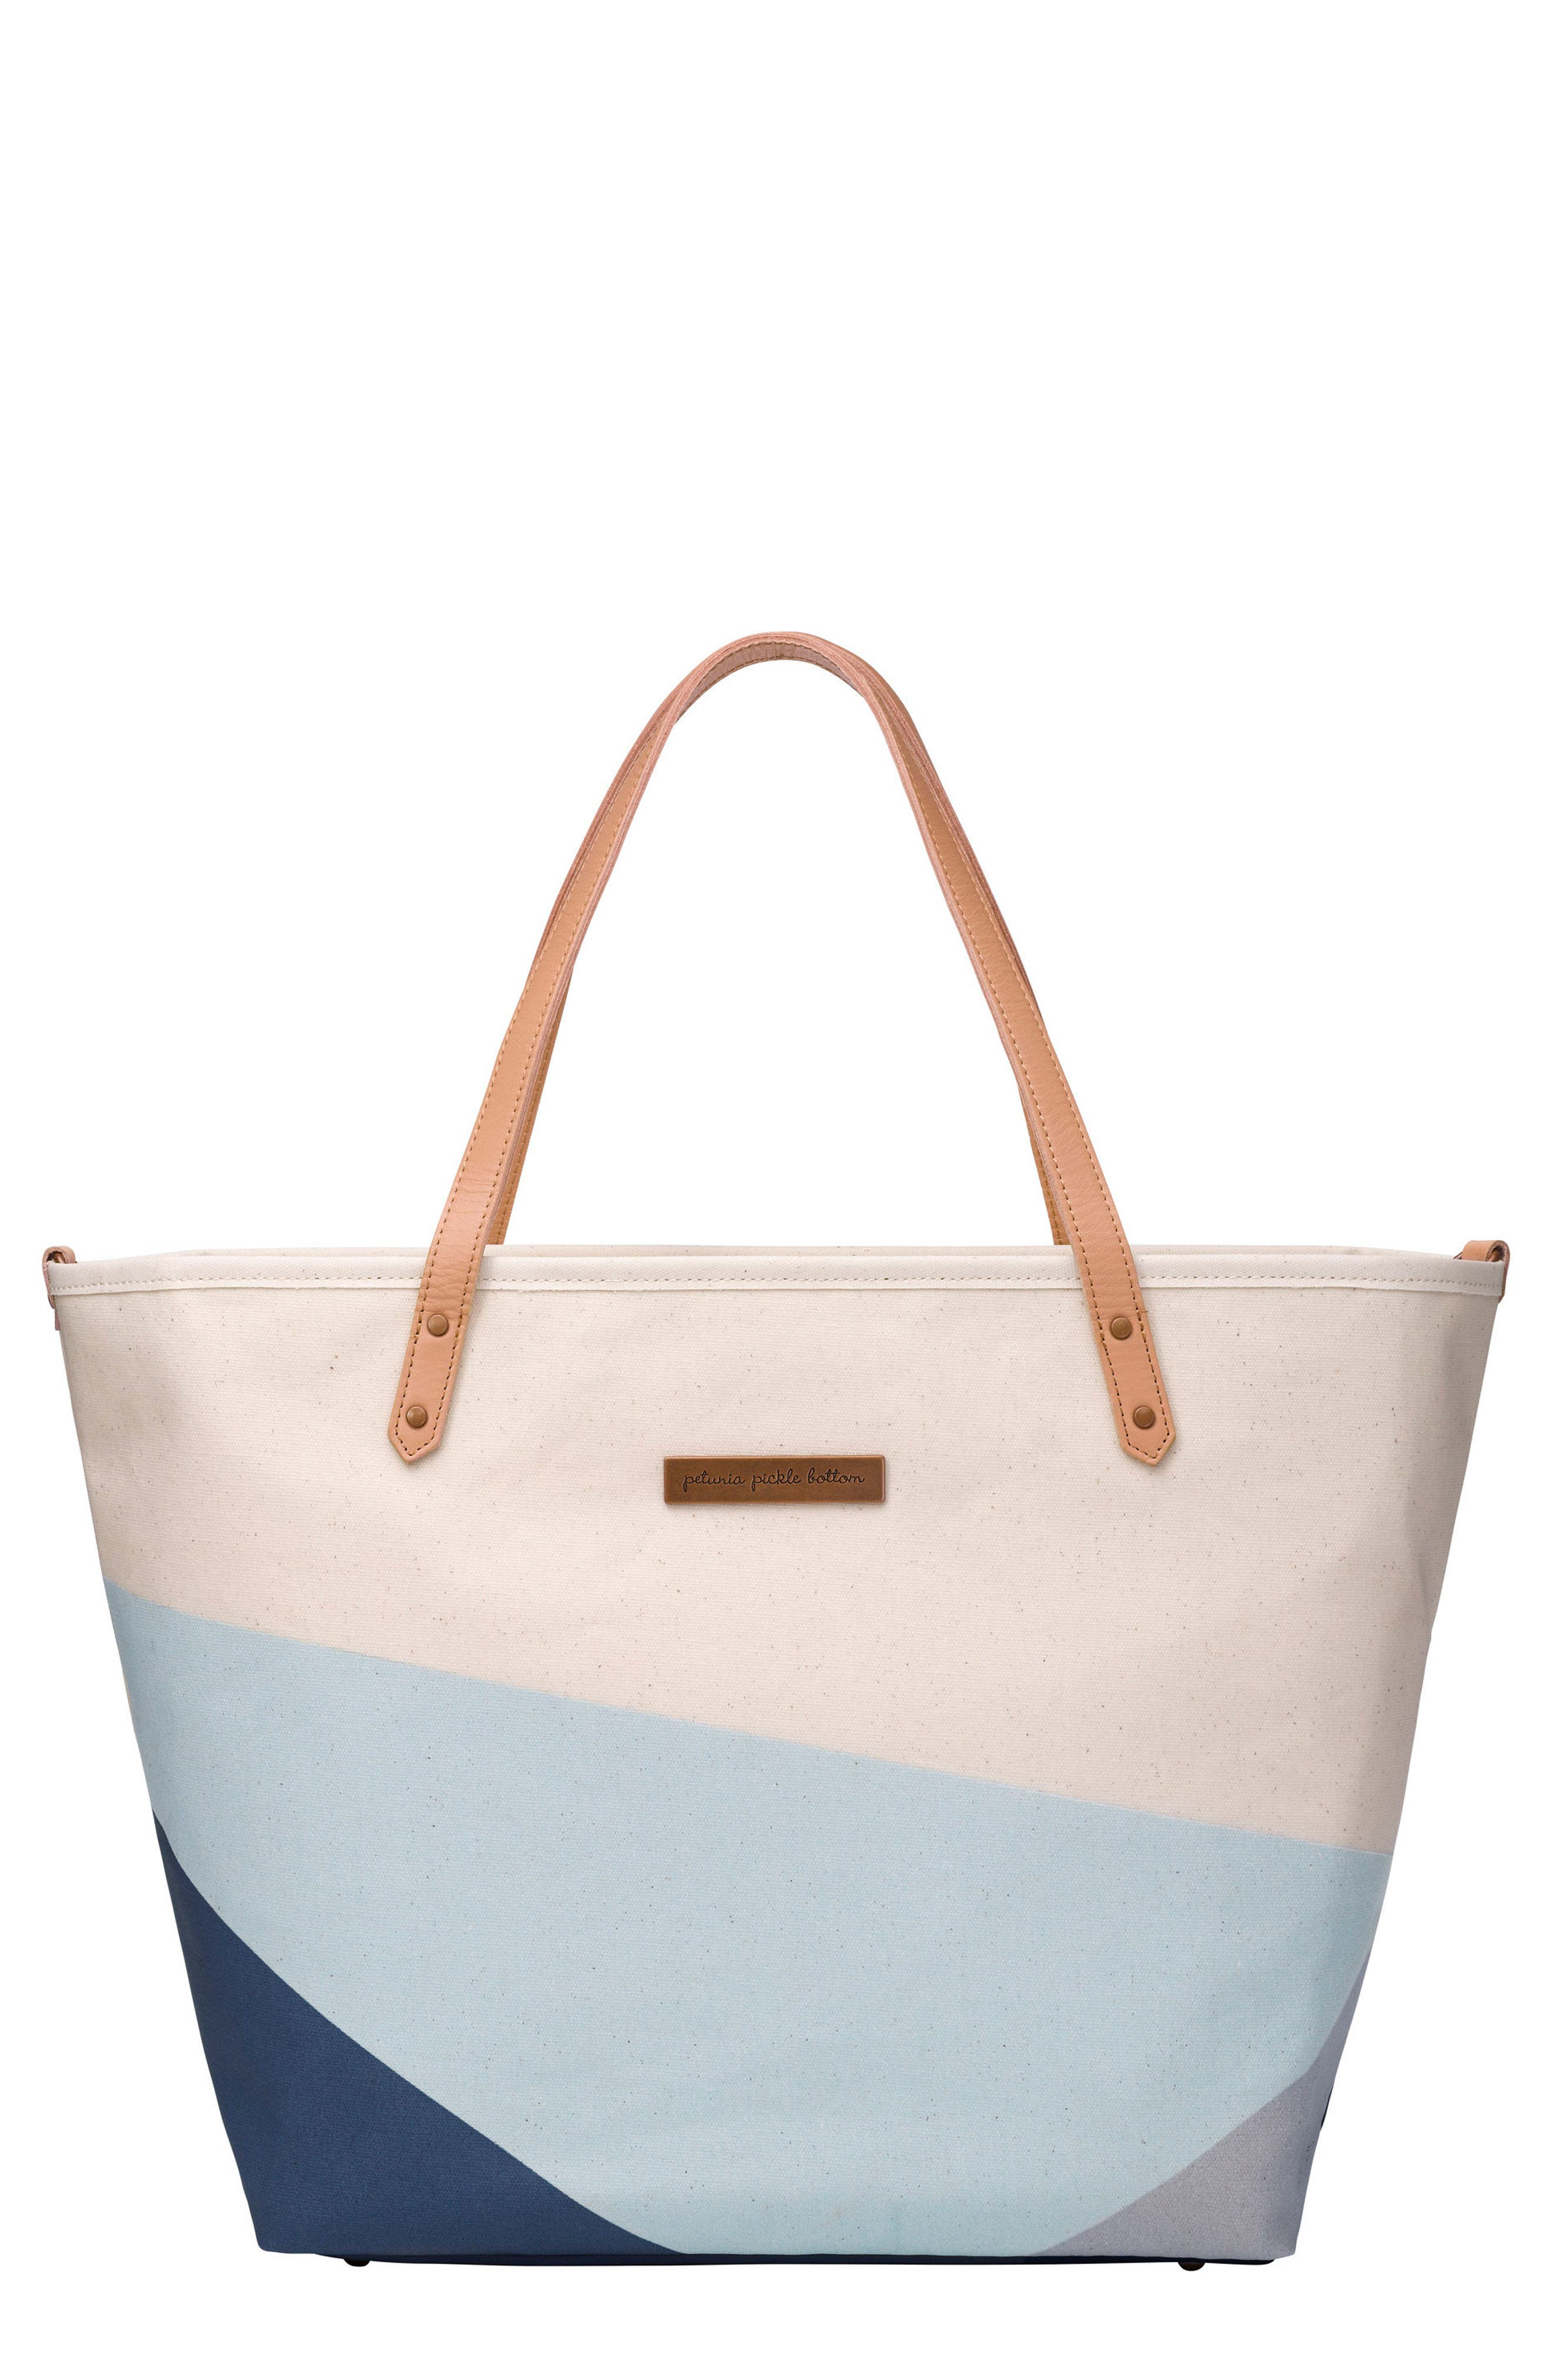 'Downtown' Canvas Diaper Tote,                             Main thumbnail 1, color,                             Birch/ Fjord